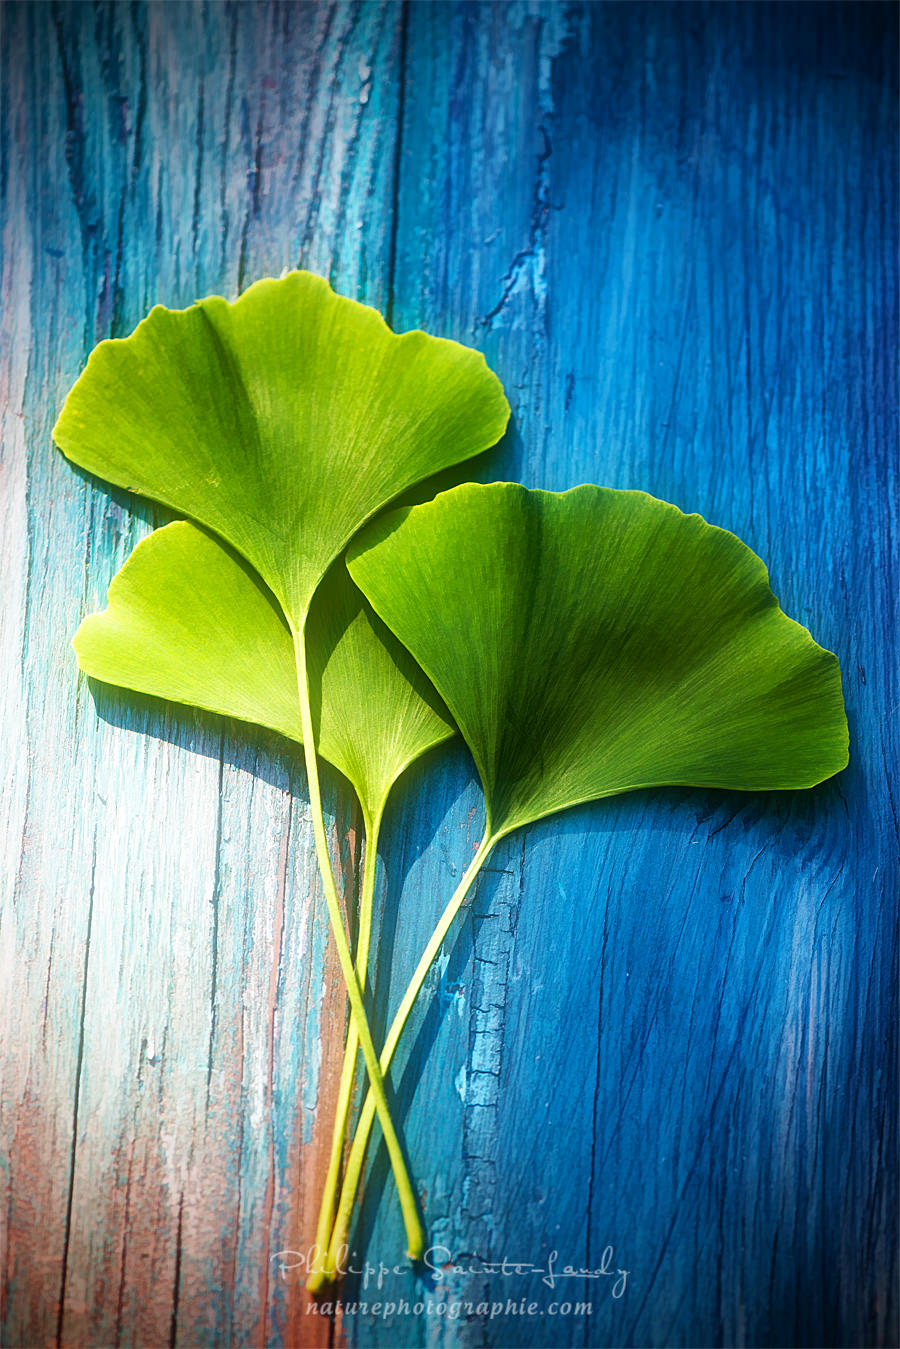 Three leaves of Ginkgo